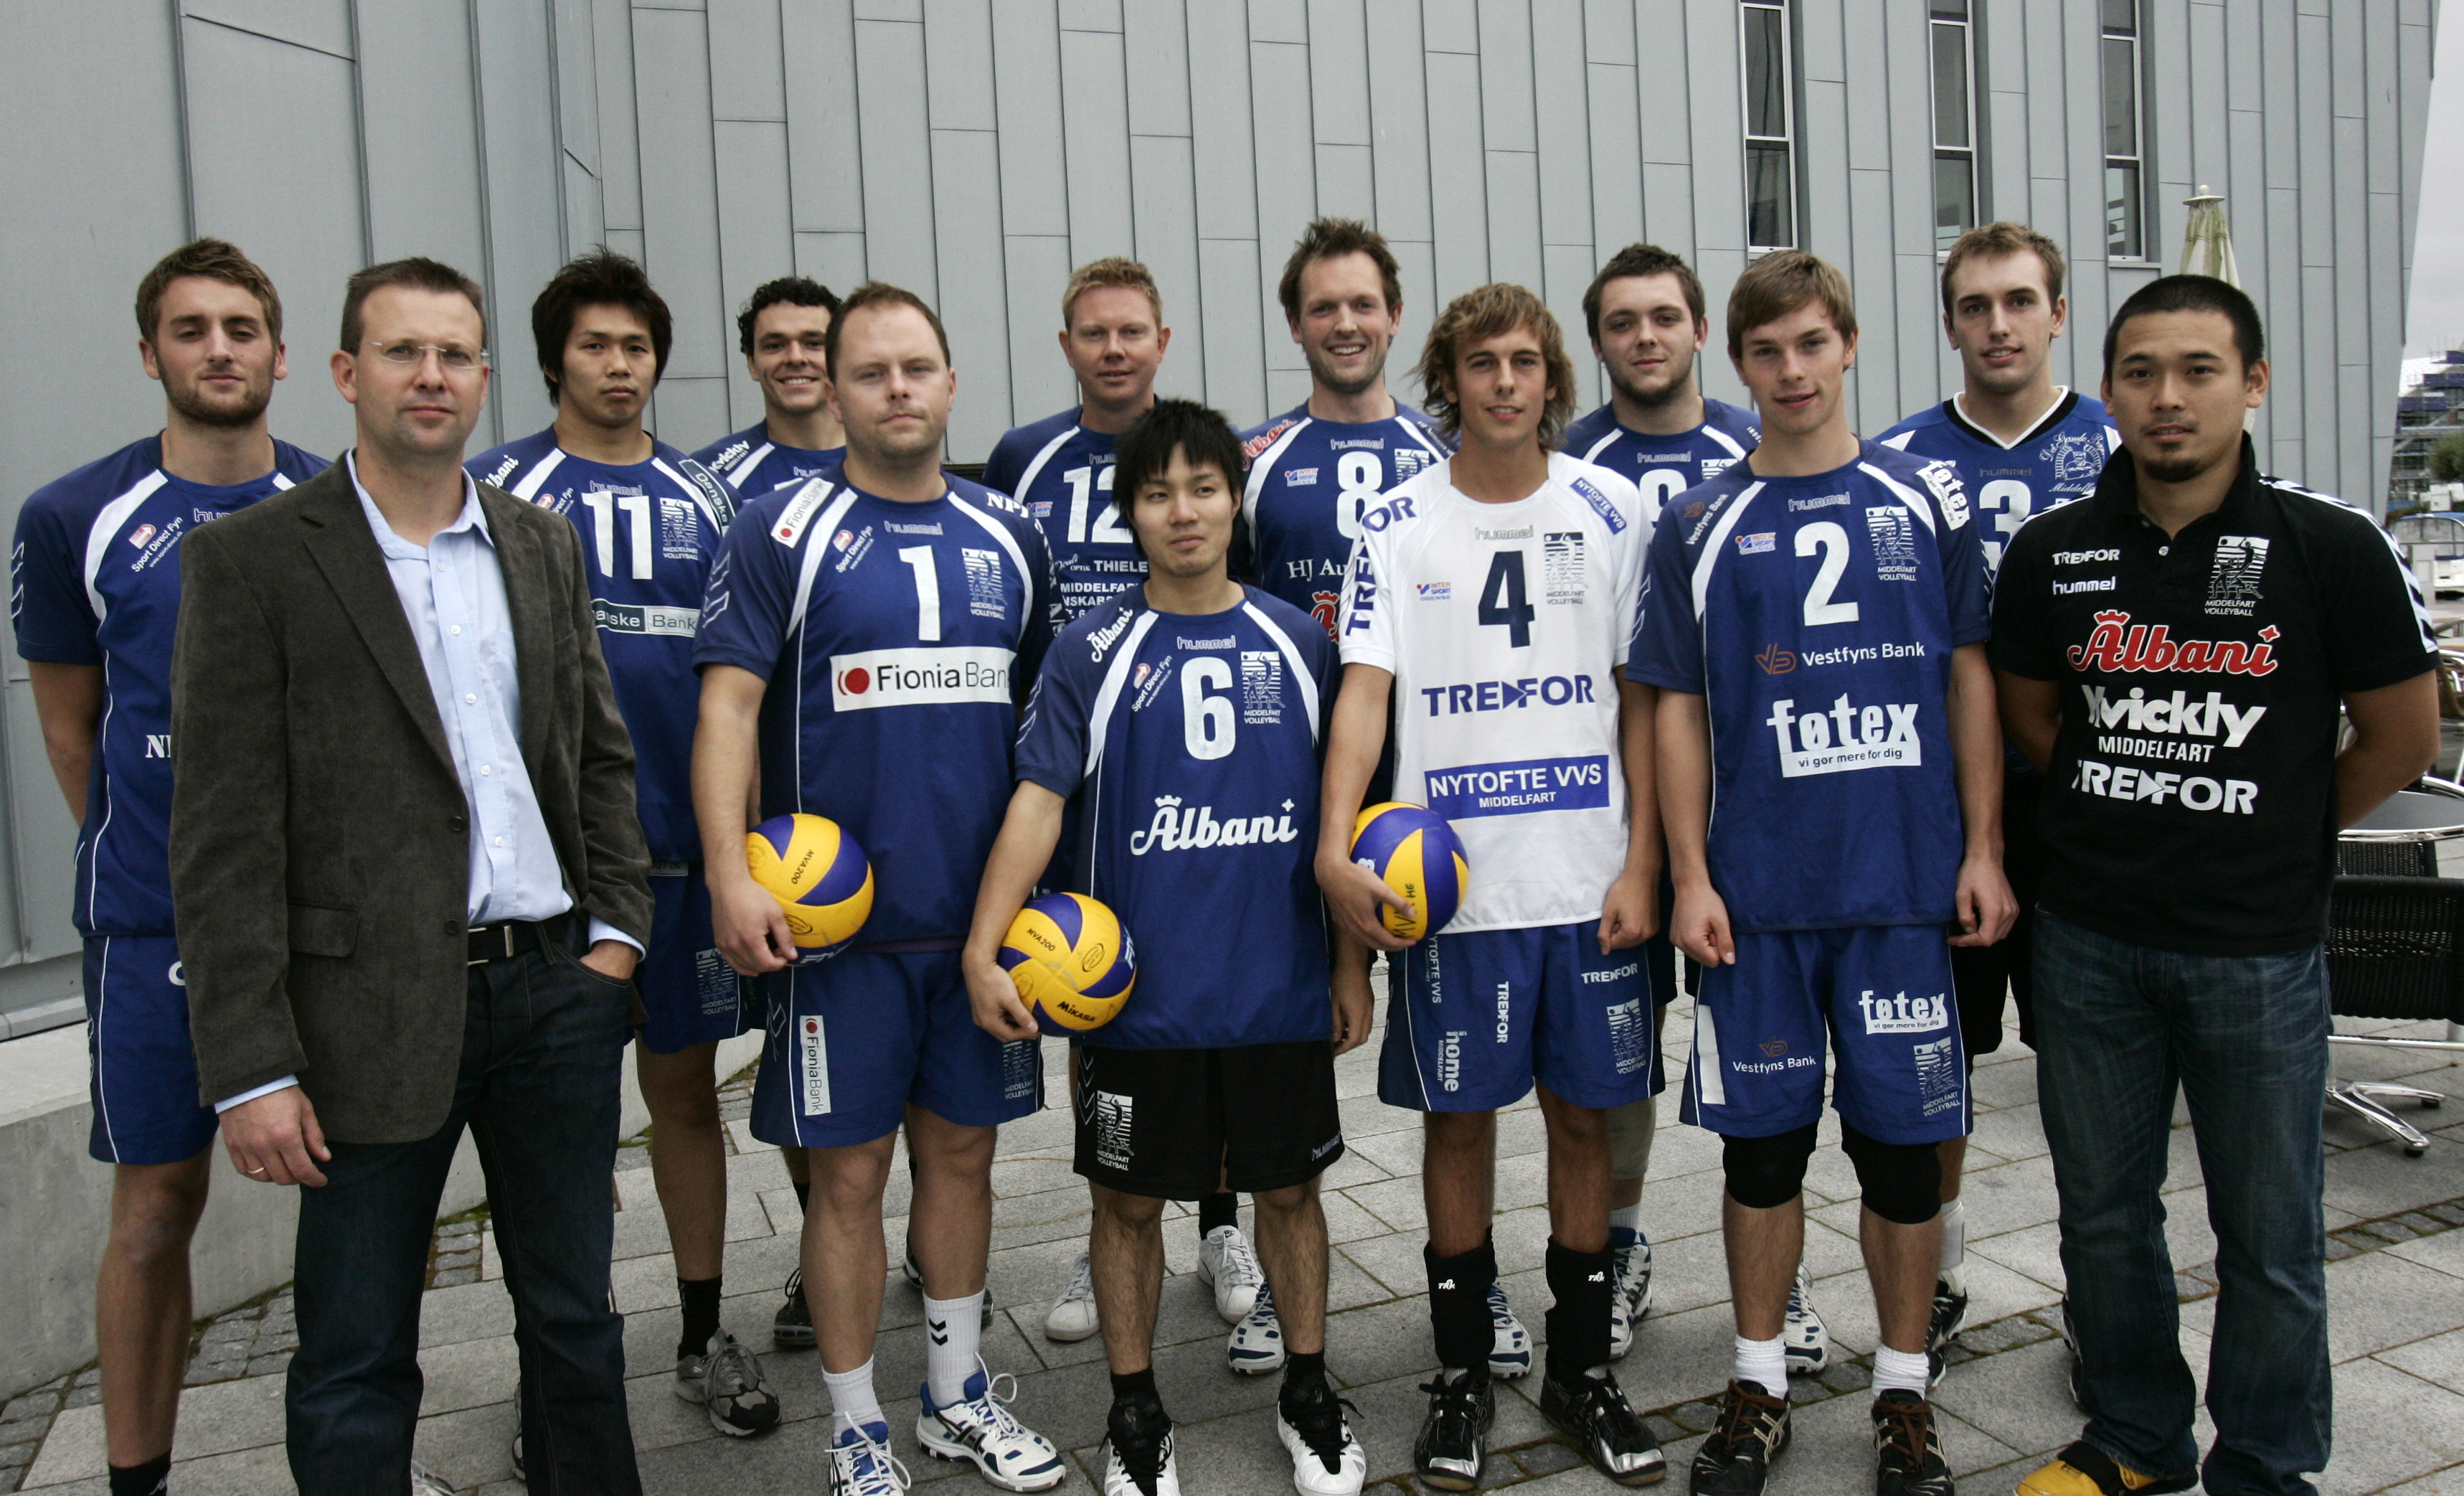 Middelfart volley pŒ kultur¿